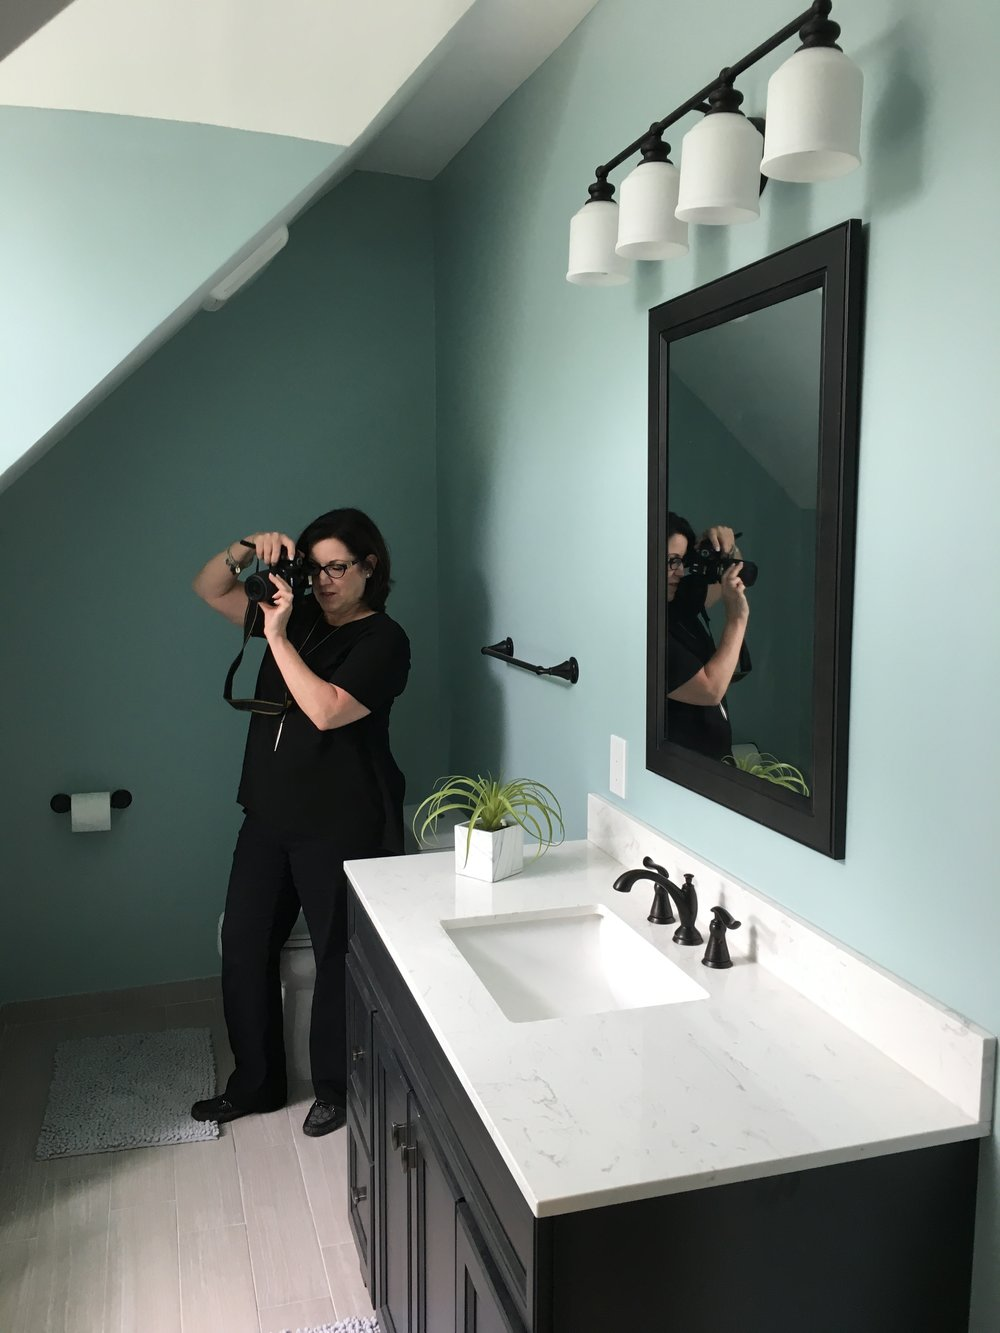 We used black in this bathroom to add a little edge to the light, soothing space. Christine is hard at work photographing our design.